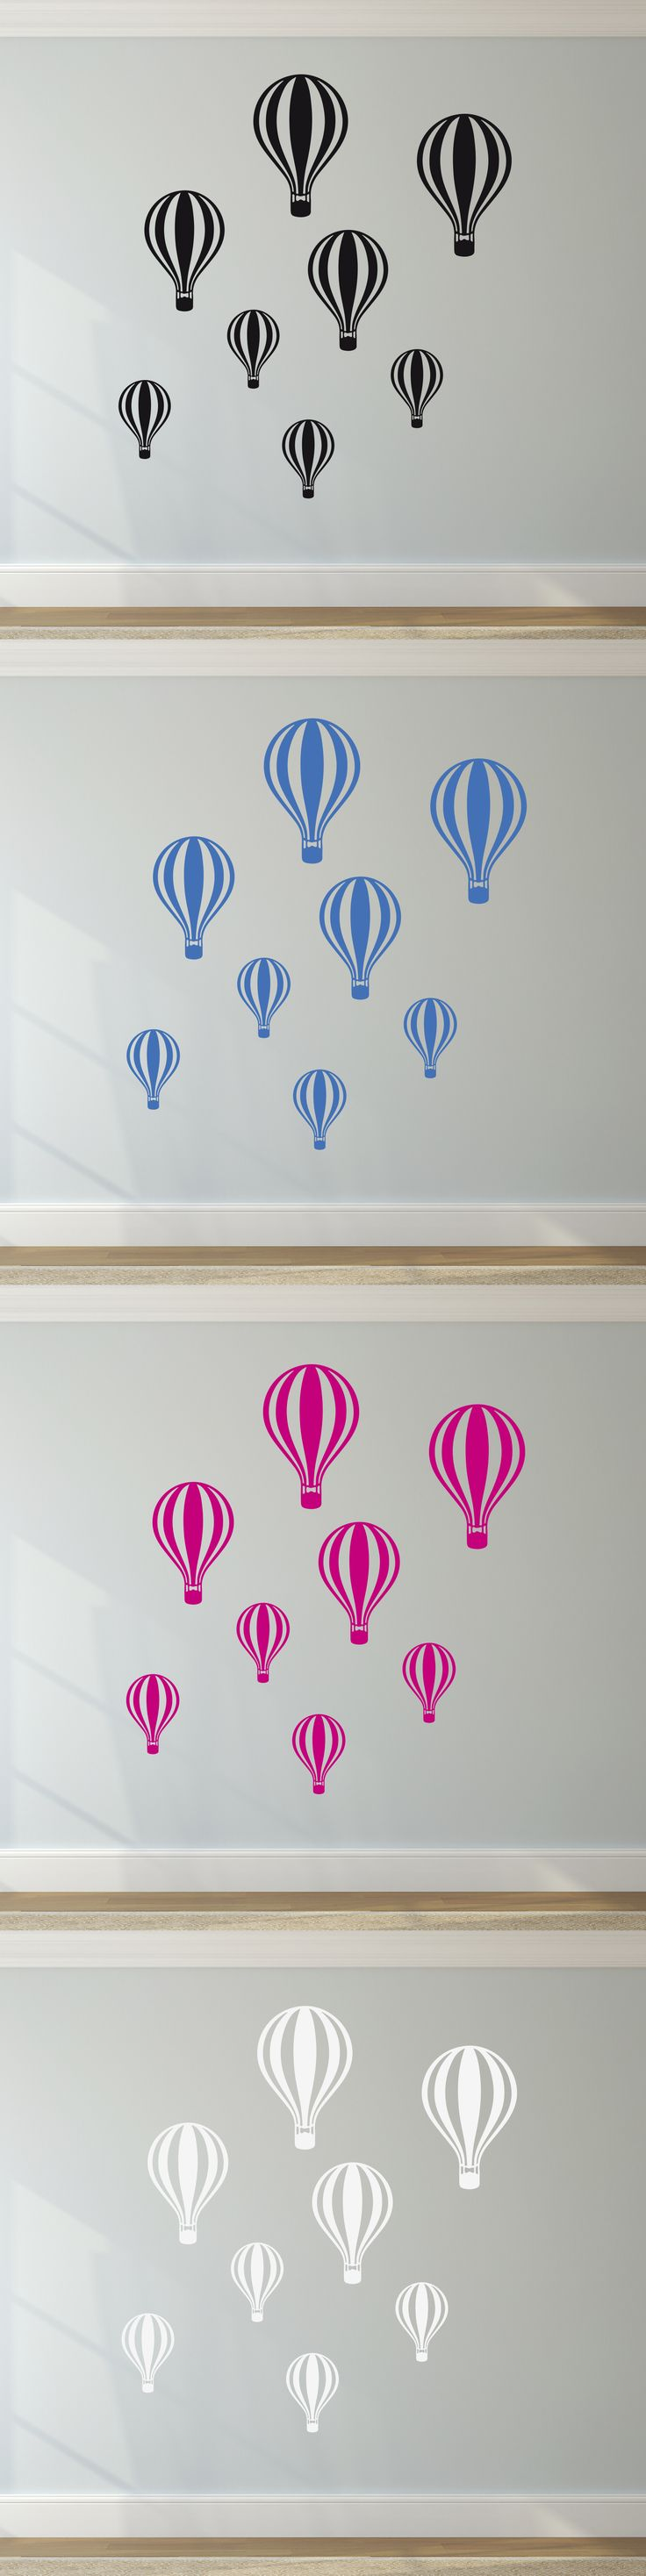 18 best wall stickers images on pinterest colours fish and vinyls set of hot air balloons pattern childrens bedroom decor decal vinyl wall sticker amipublicfo Images